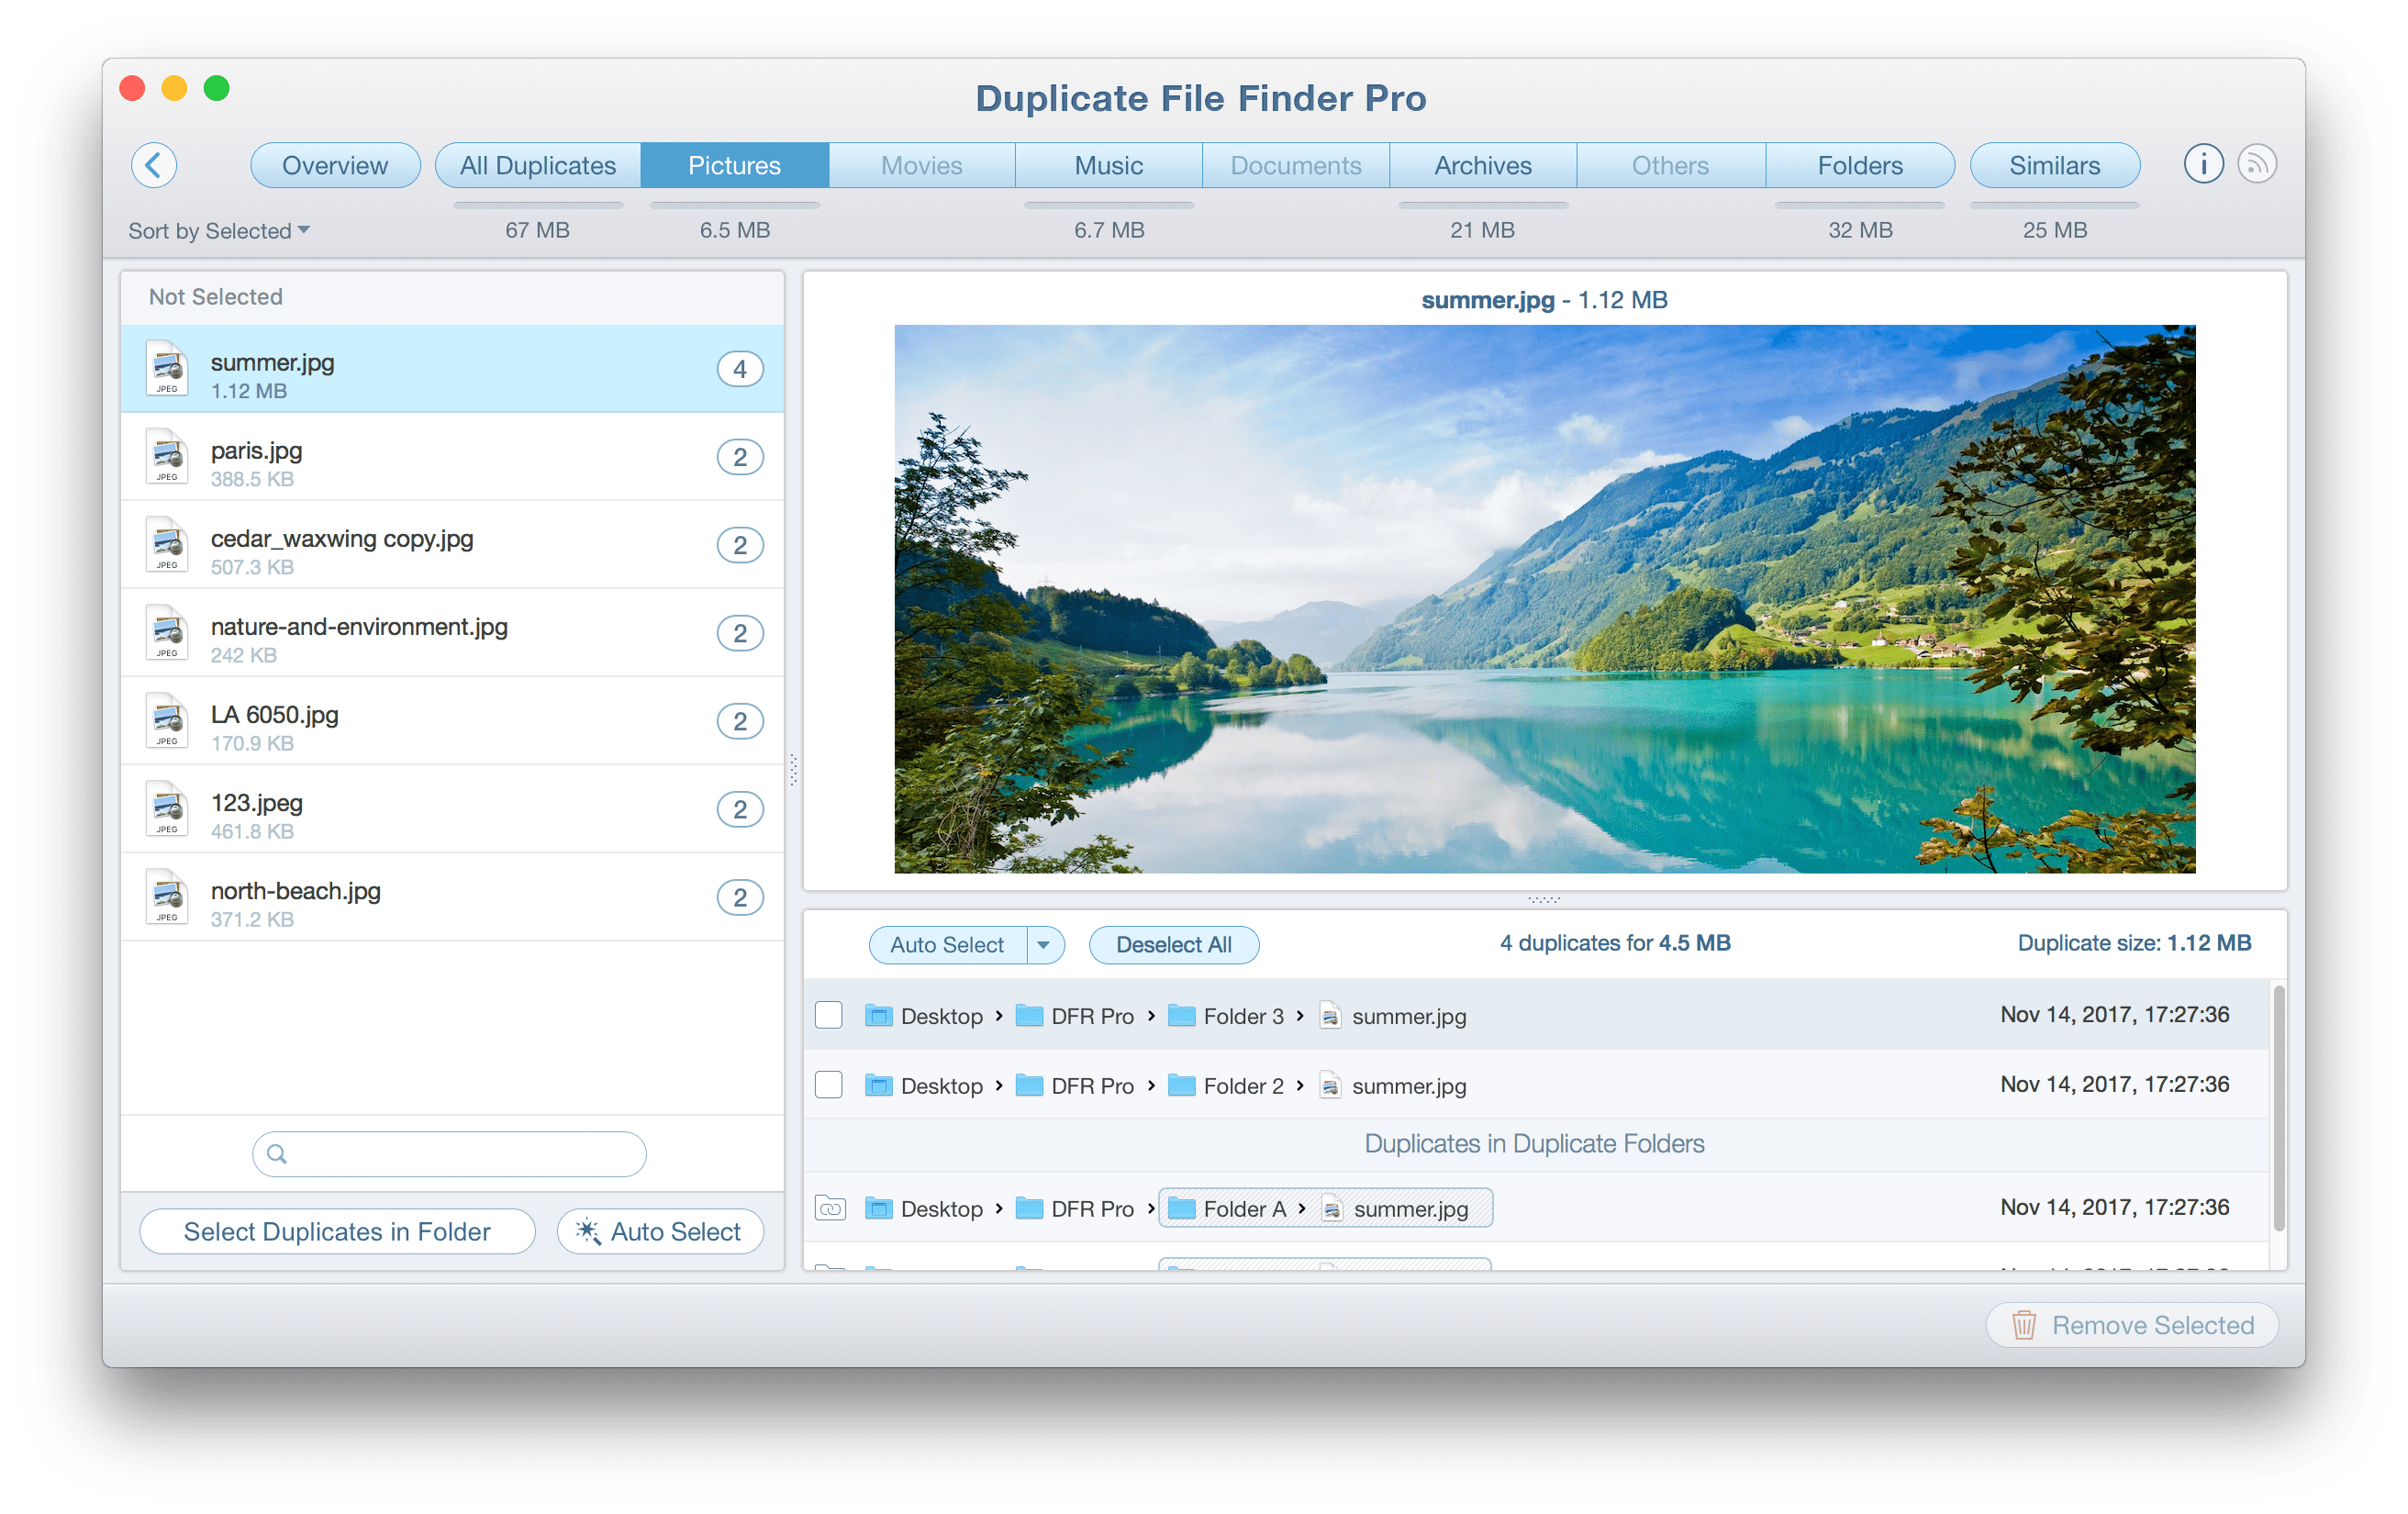 Duplicate File Finder Fenster